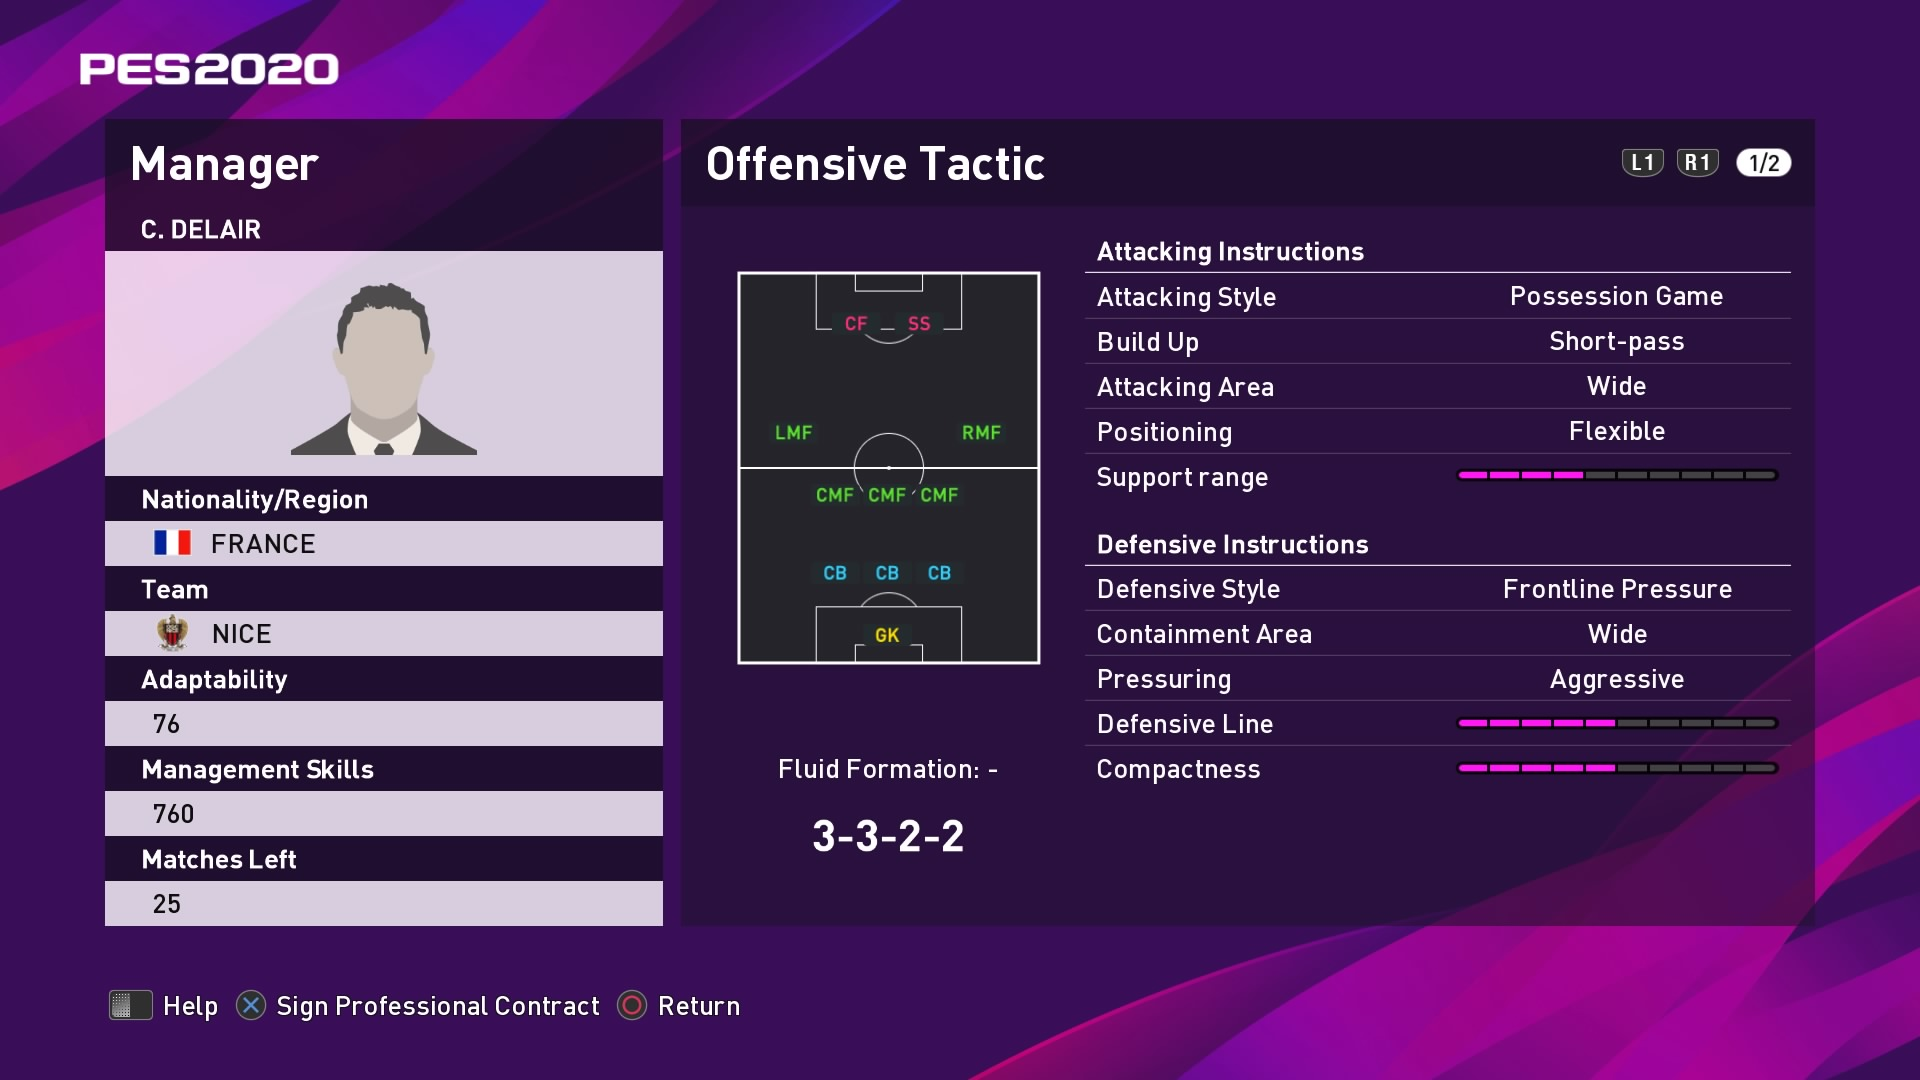 C. Delair (Patrick Vieira) Offensive Tactic in PES 2020 myClub